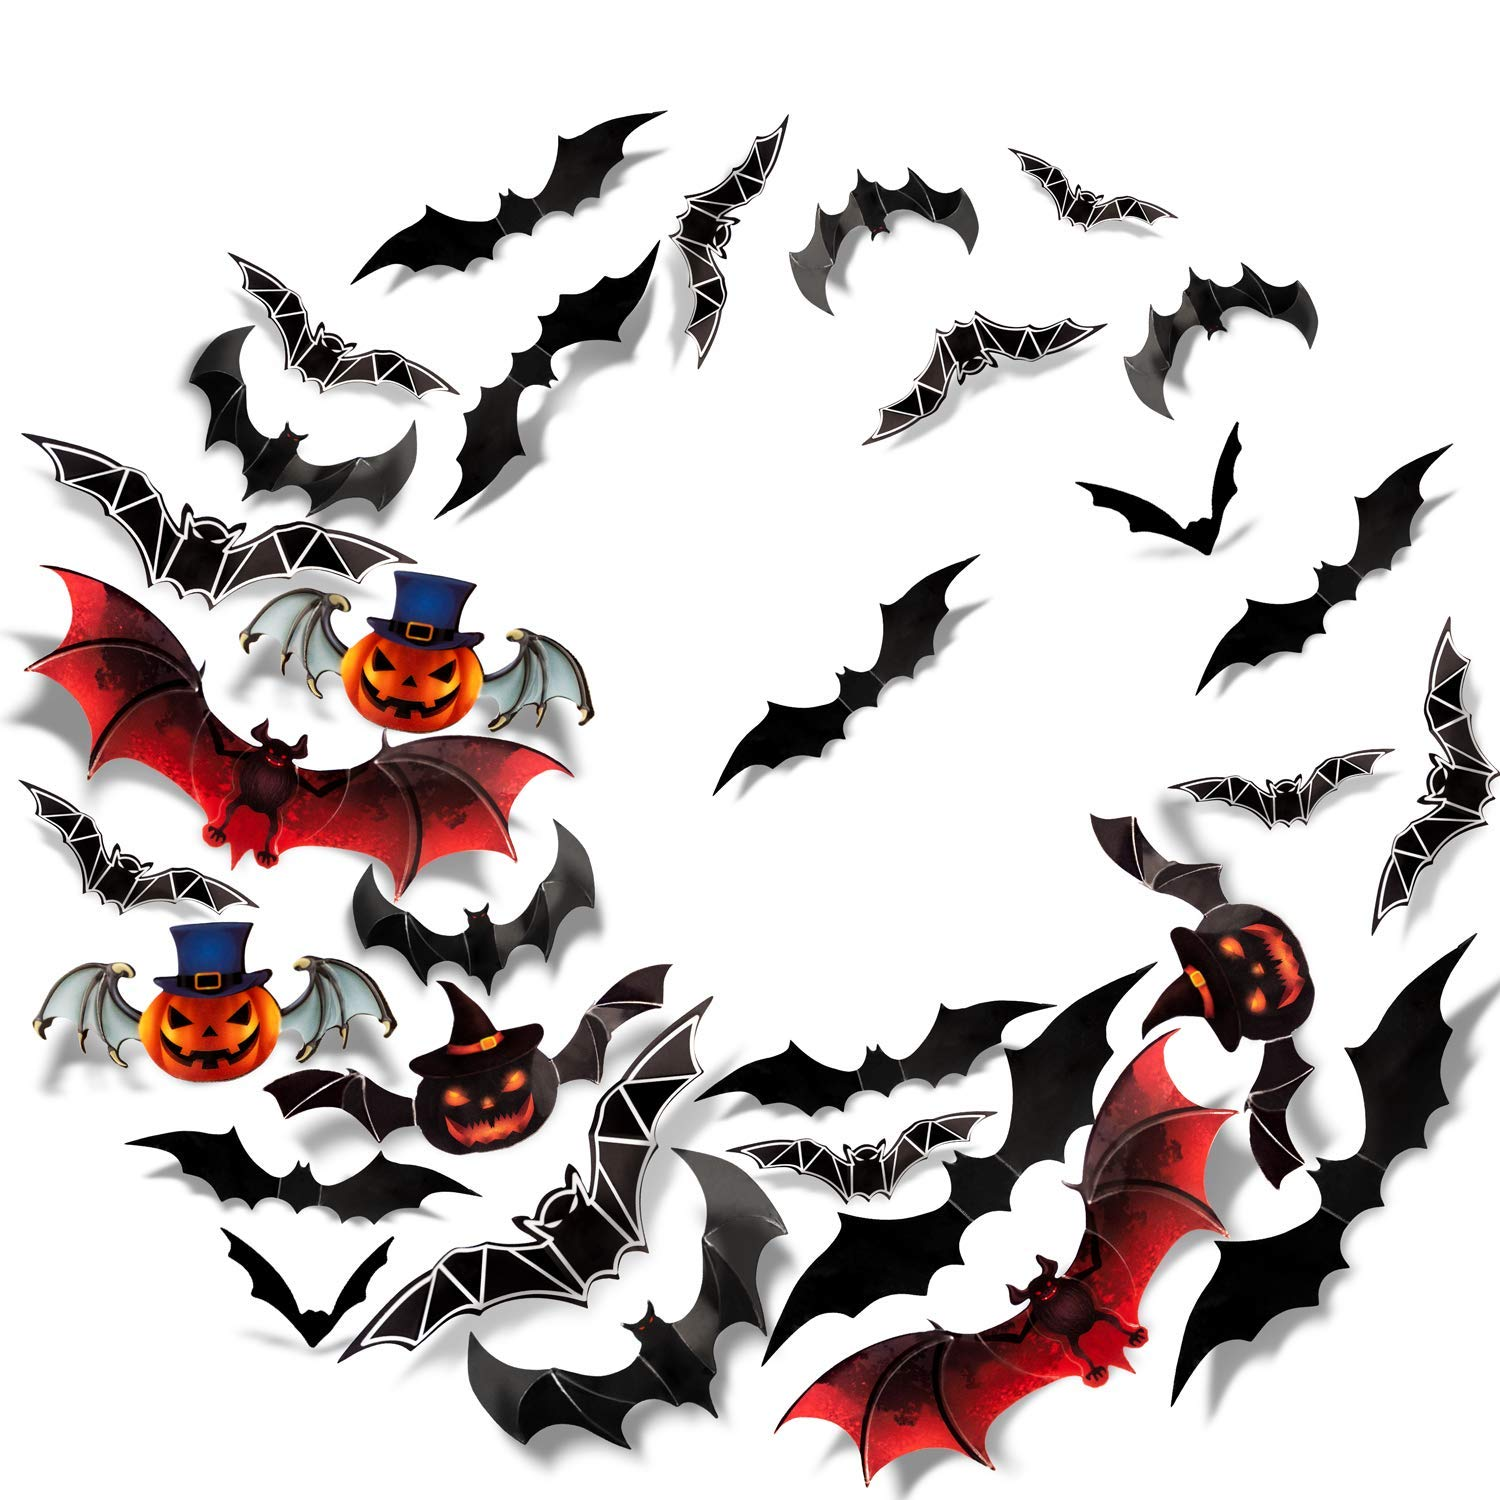 Sumille 3D Bats Wall Stickers Halloween Decal 36Pcs Art Decor for Haunted House Carnival Vampire and Batman Decoration